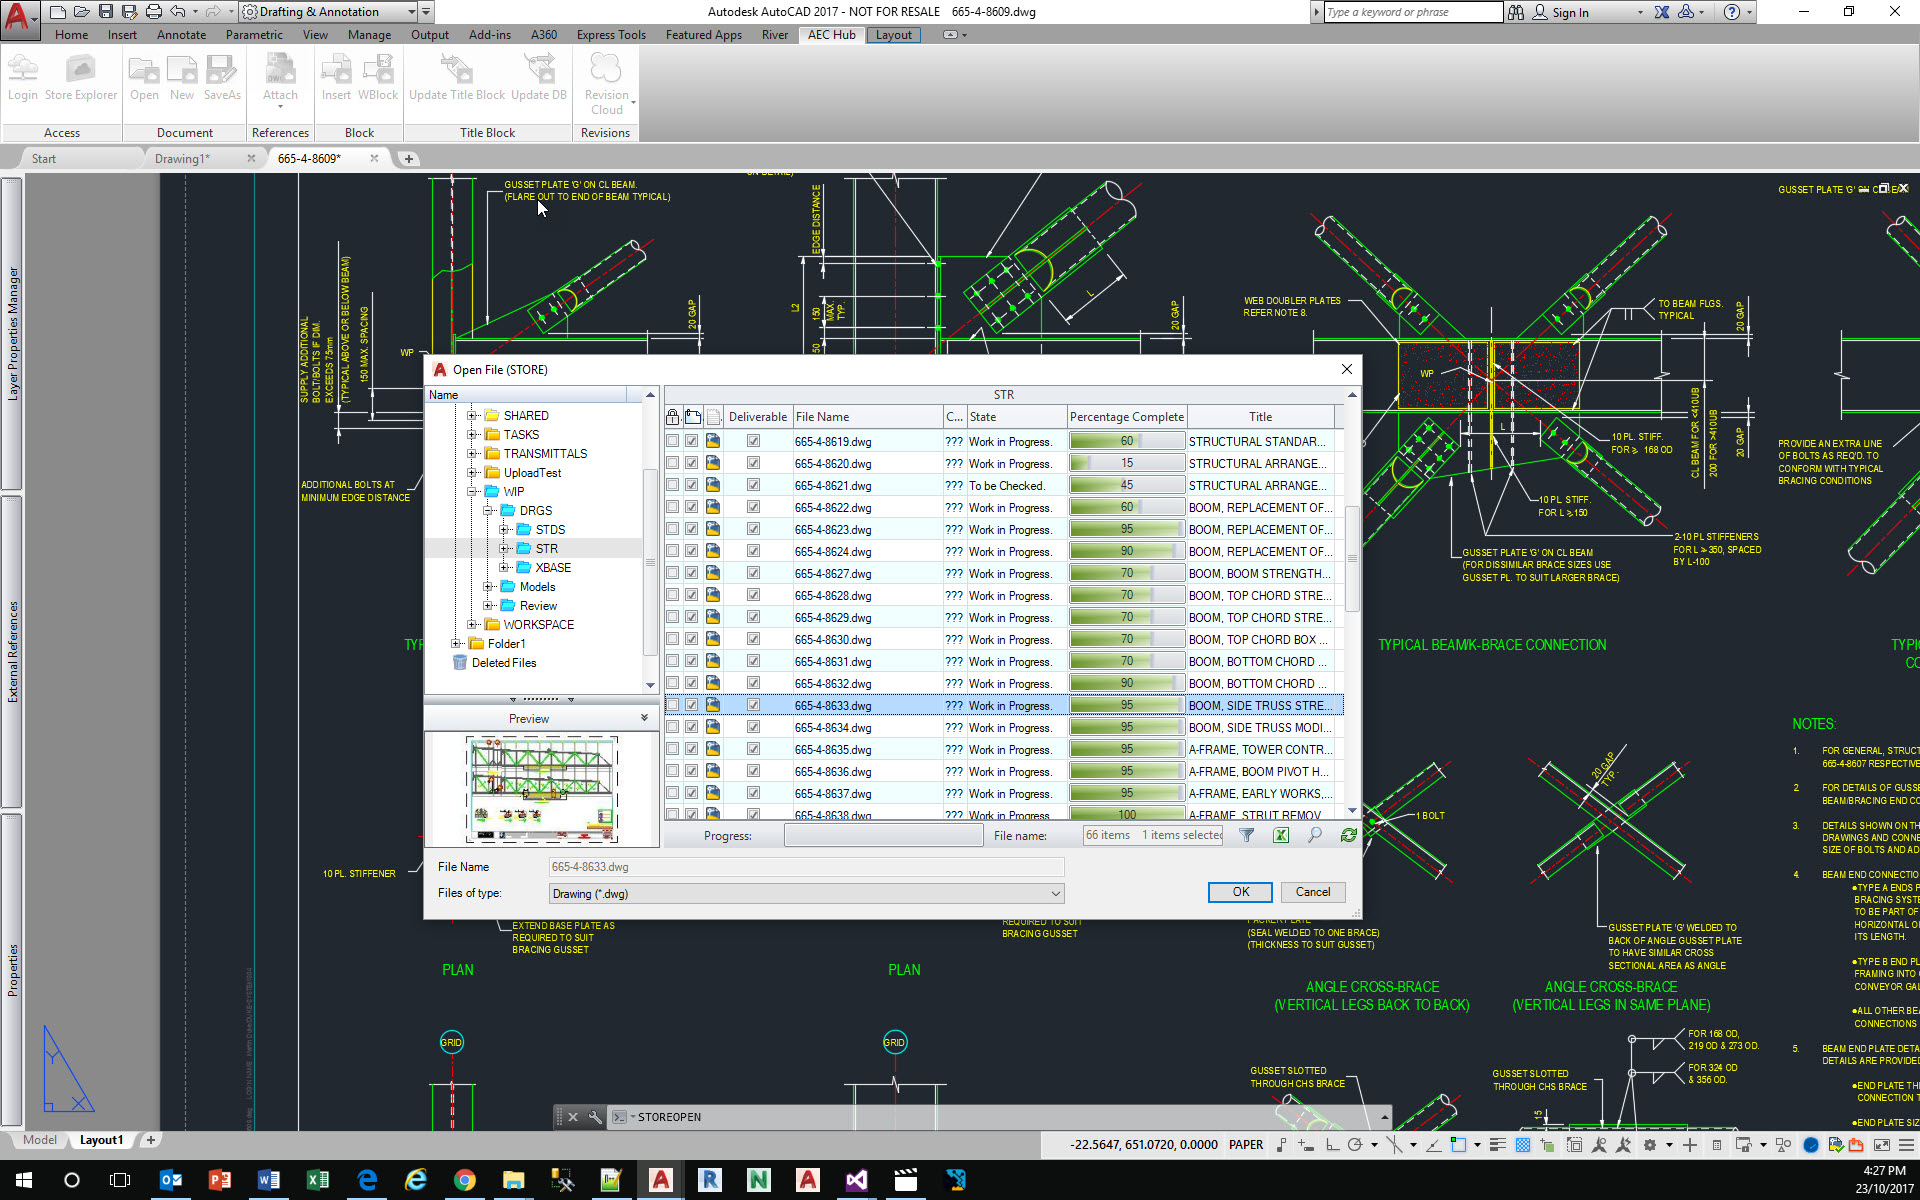 AutoCAD Open from Cloud